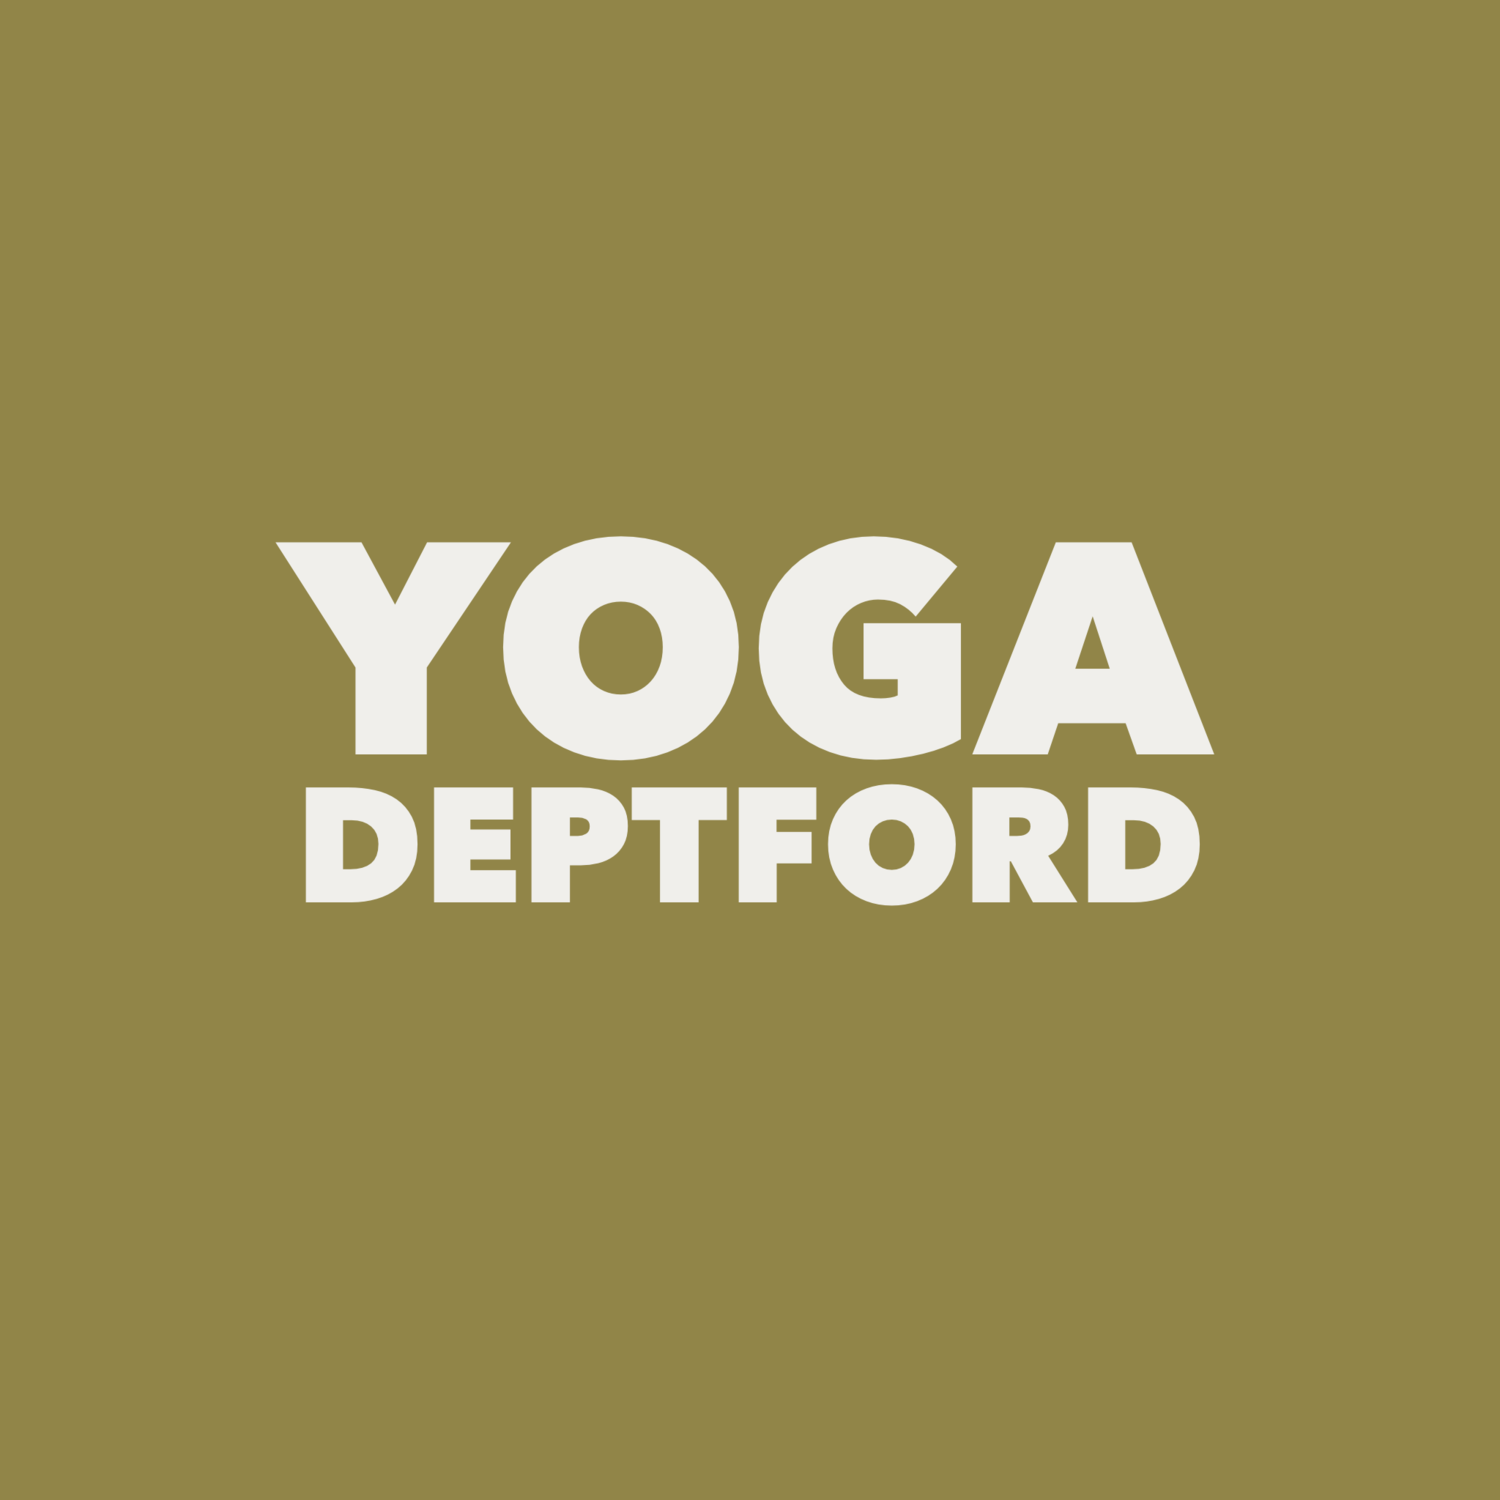 YOGA DEPTFORD